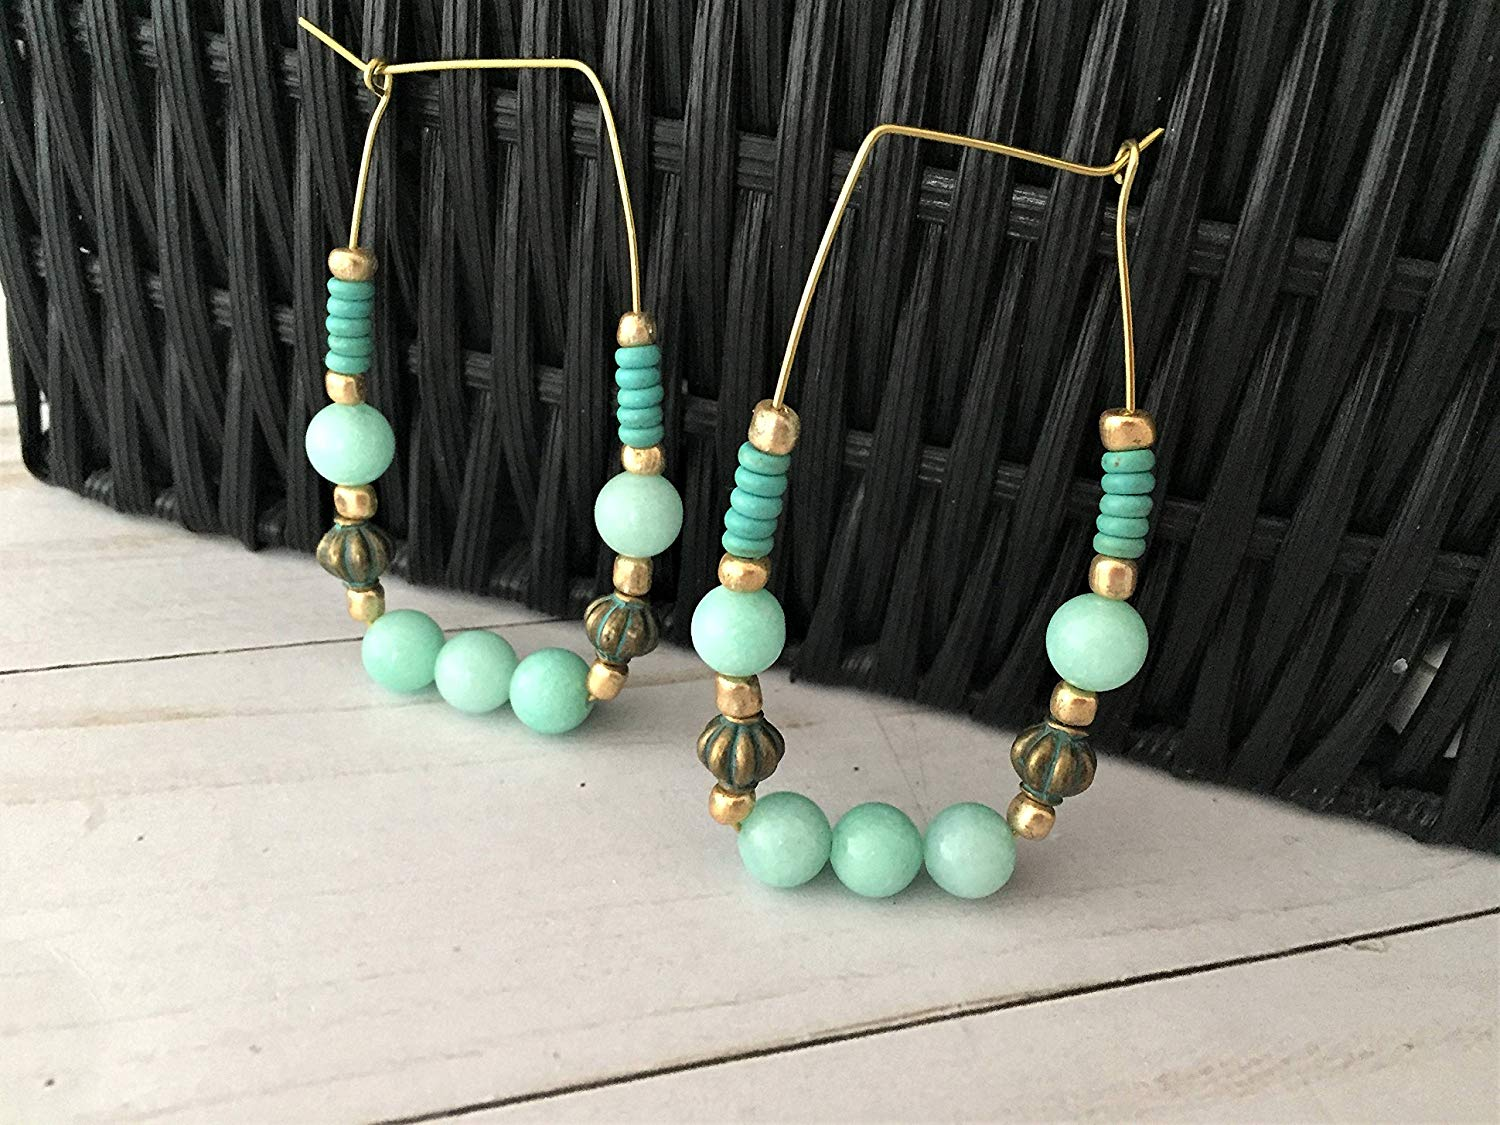 Beaded Hoop Earrings, Geometric Earrings, Turquoise Bead Hoop Earrings, Blue Hoop Earrings, Beaded Rectangle Hoops, Mint Green Hoop Earrings